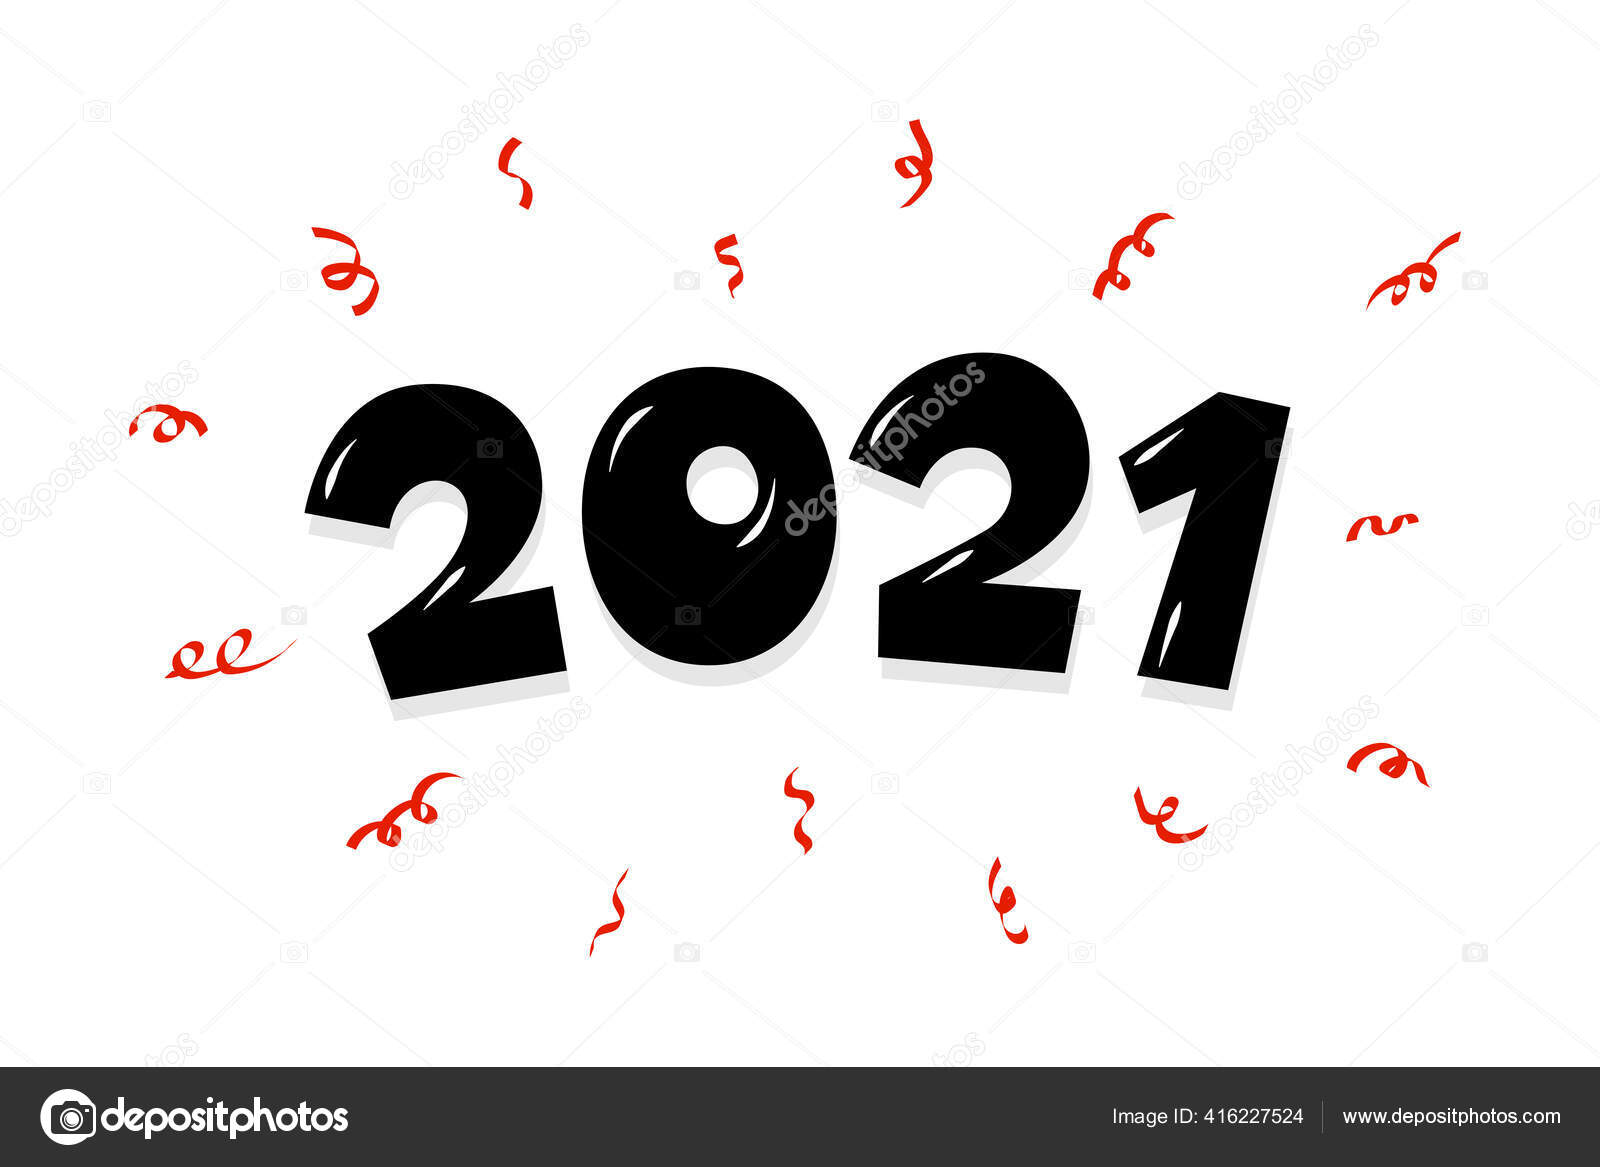 2021 cartoon hand drawn comic text lettering number with confetti happy new year and merry christmas holiday greeting card design xmas vector illustration on white background stock vector c azatvaleev 416227524 depositphotos